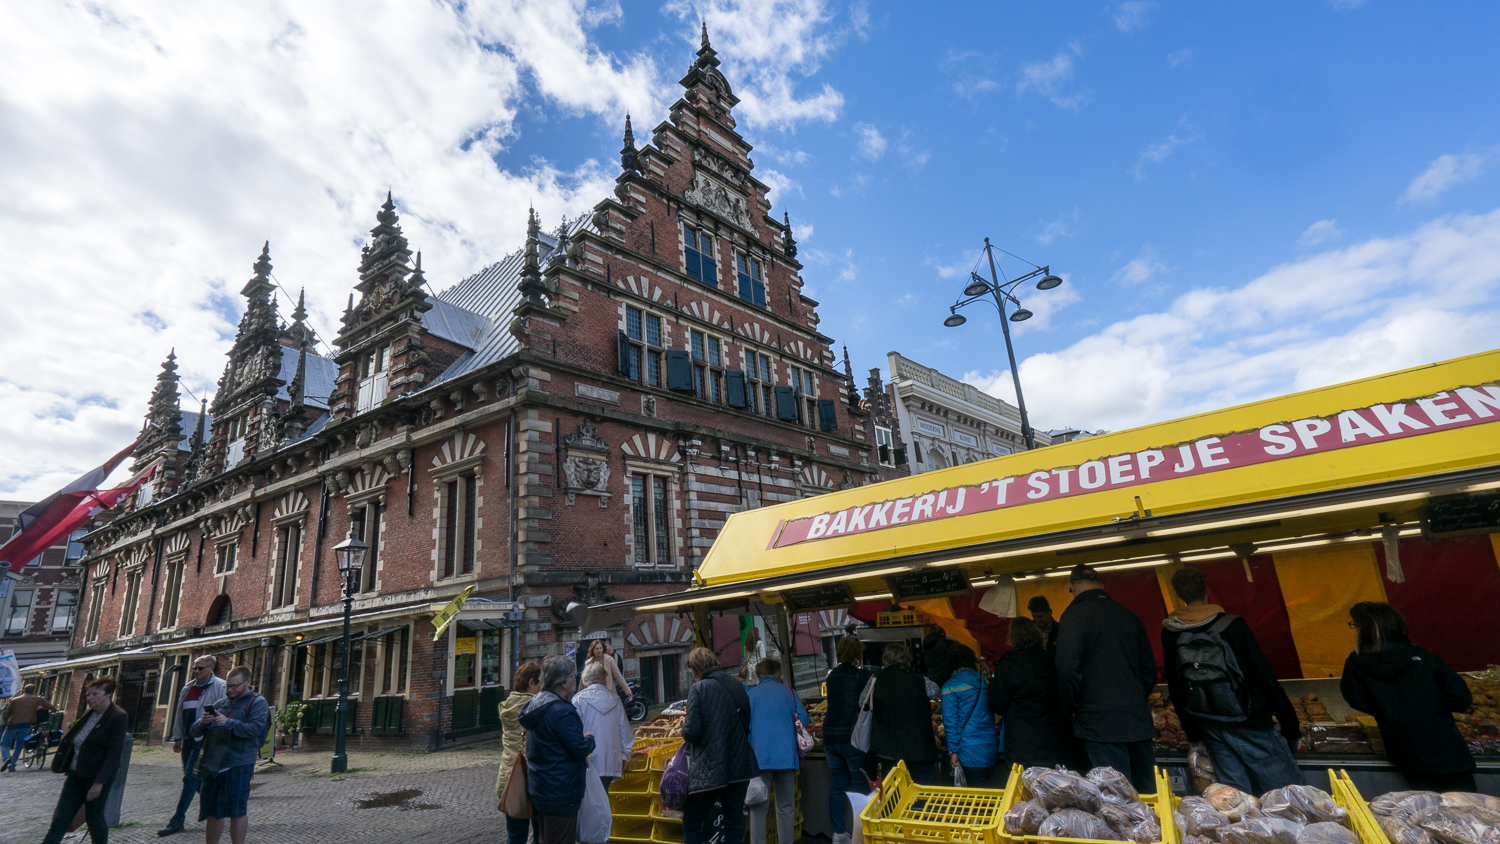 MARKETS OF HAARLEM, THE NETHERLANDS // MEETYOUTHERE TRAVEL BLOG